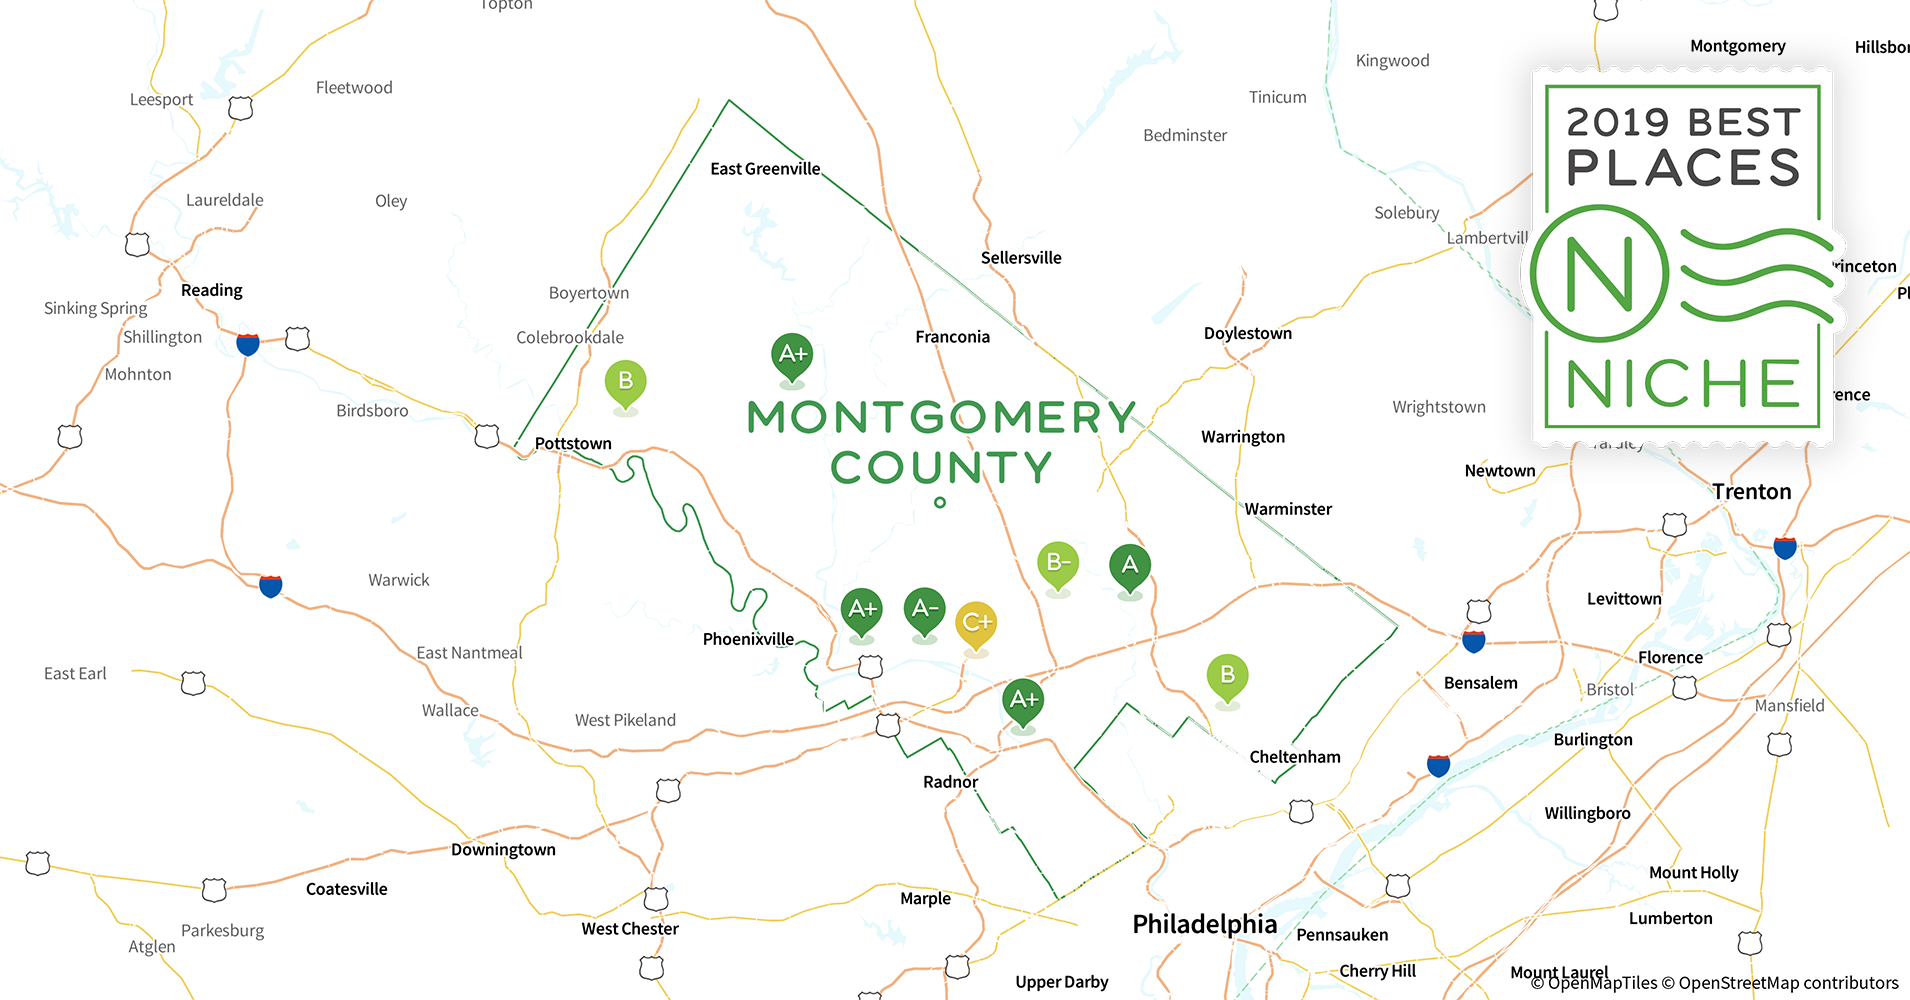 2019 Best Places to Live in Montgomery County, PA - Niche